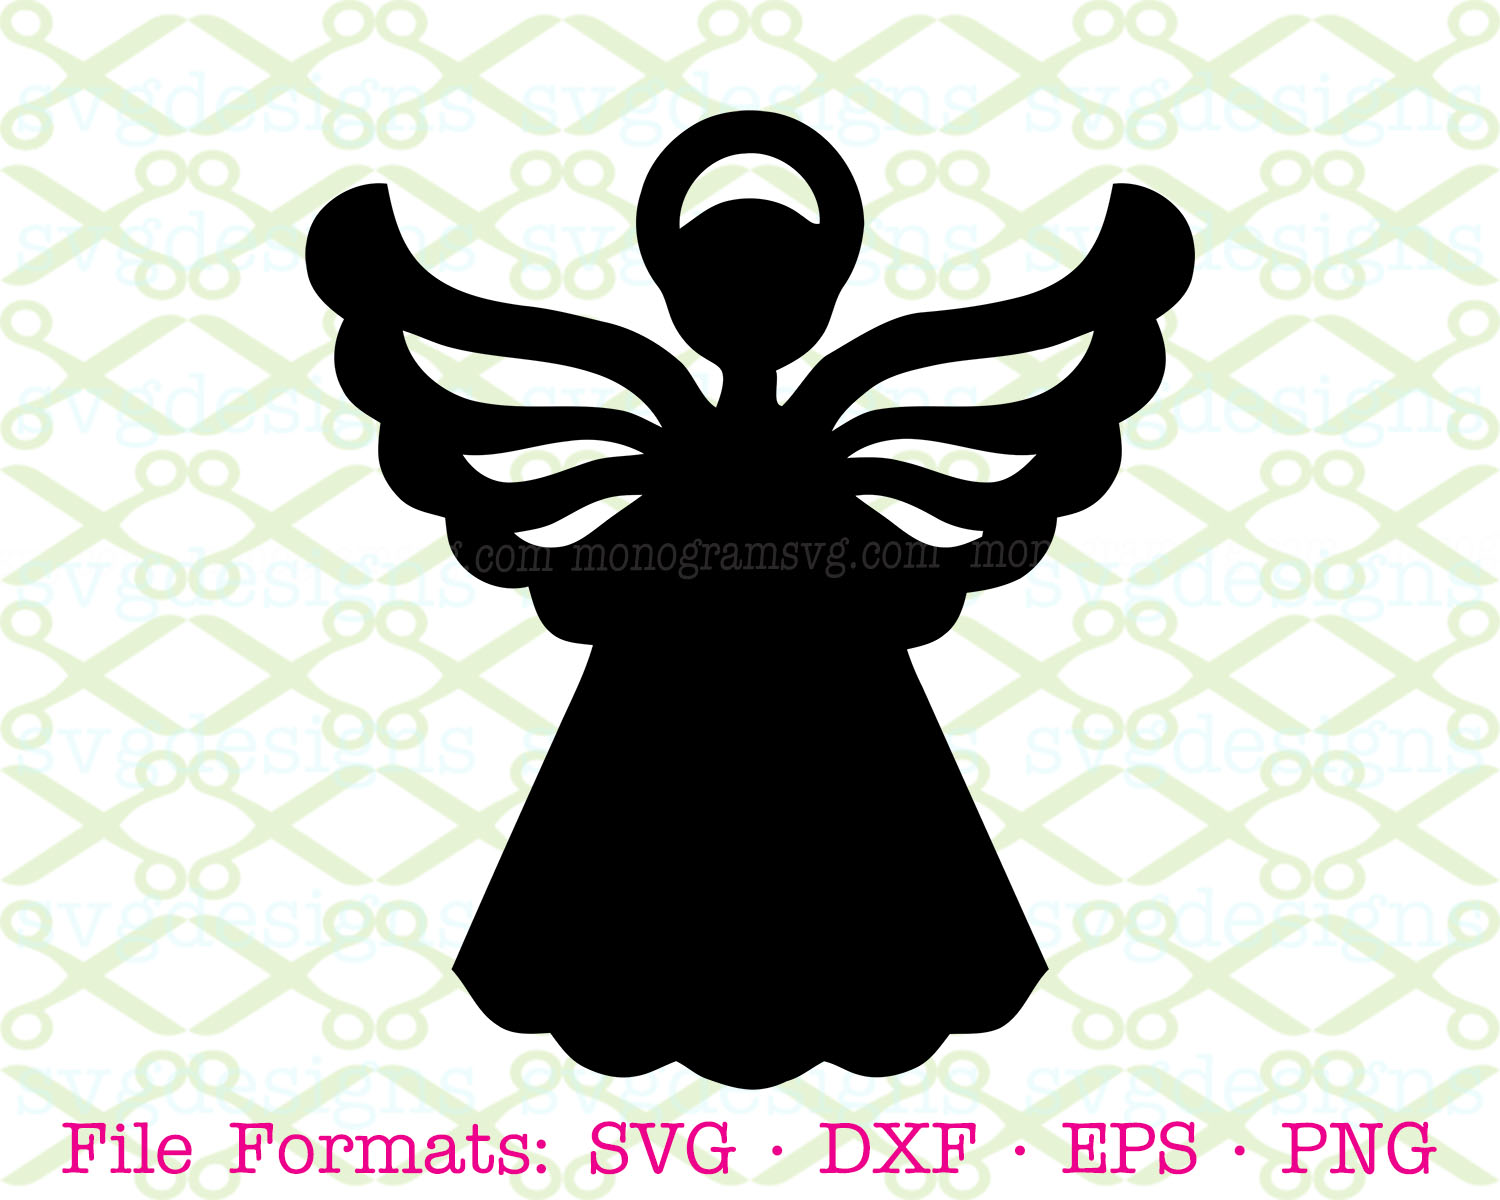 stencil svg #657, Download drawings